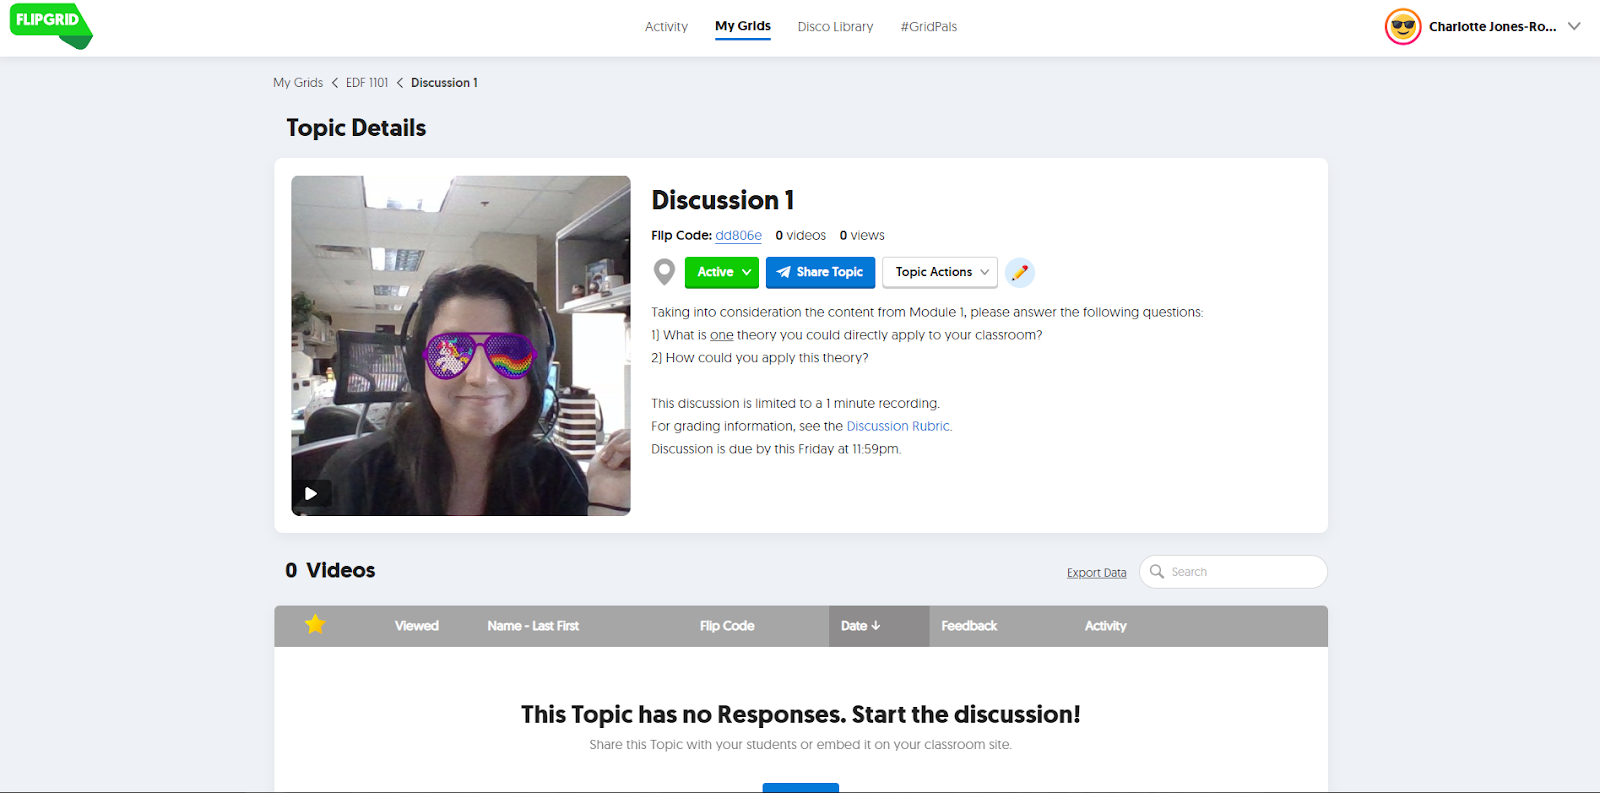 Screenshot: Professor poses an discussion topic using FlipGrid